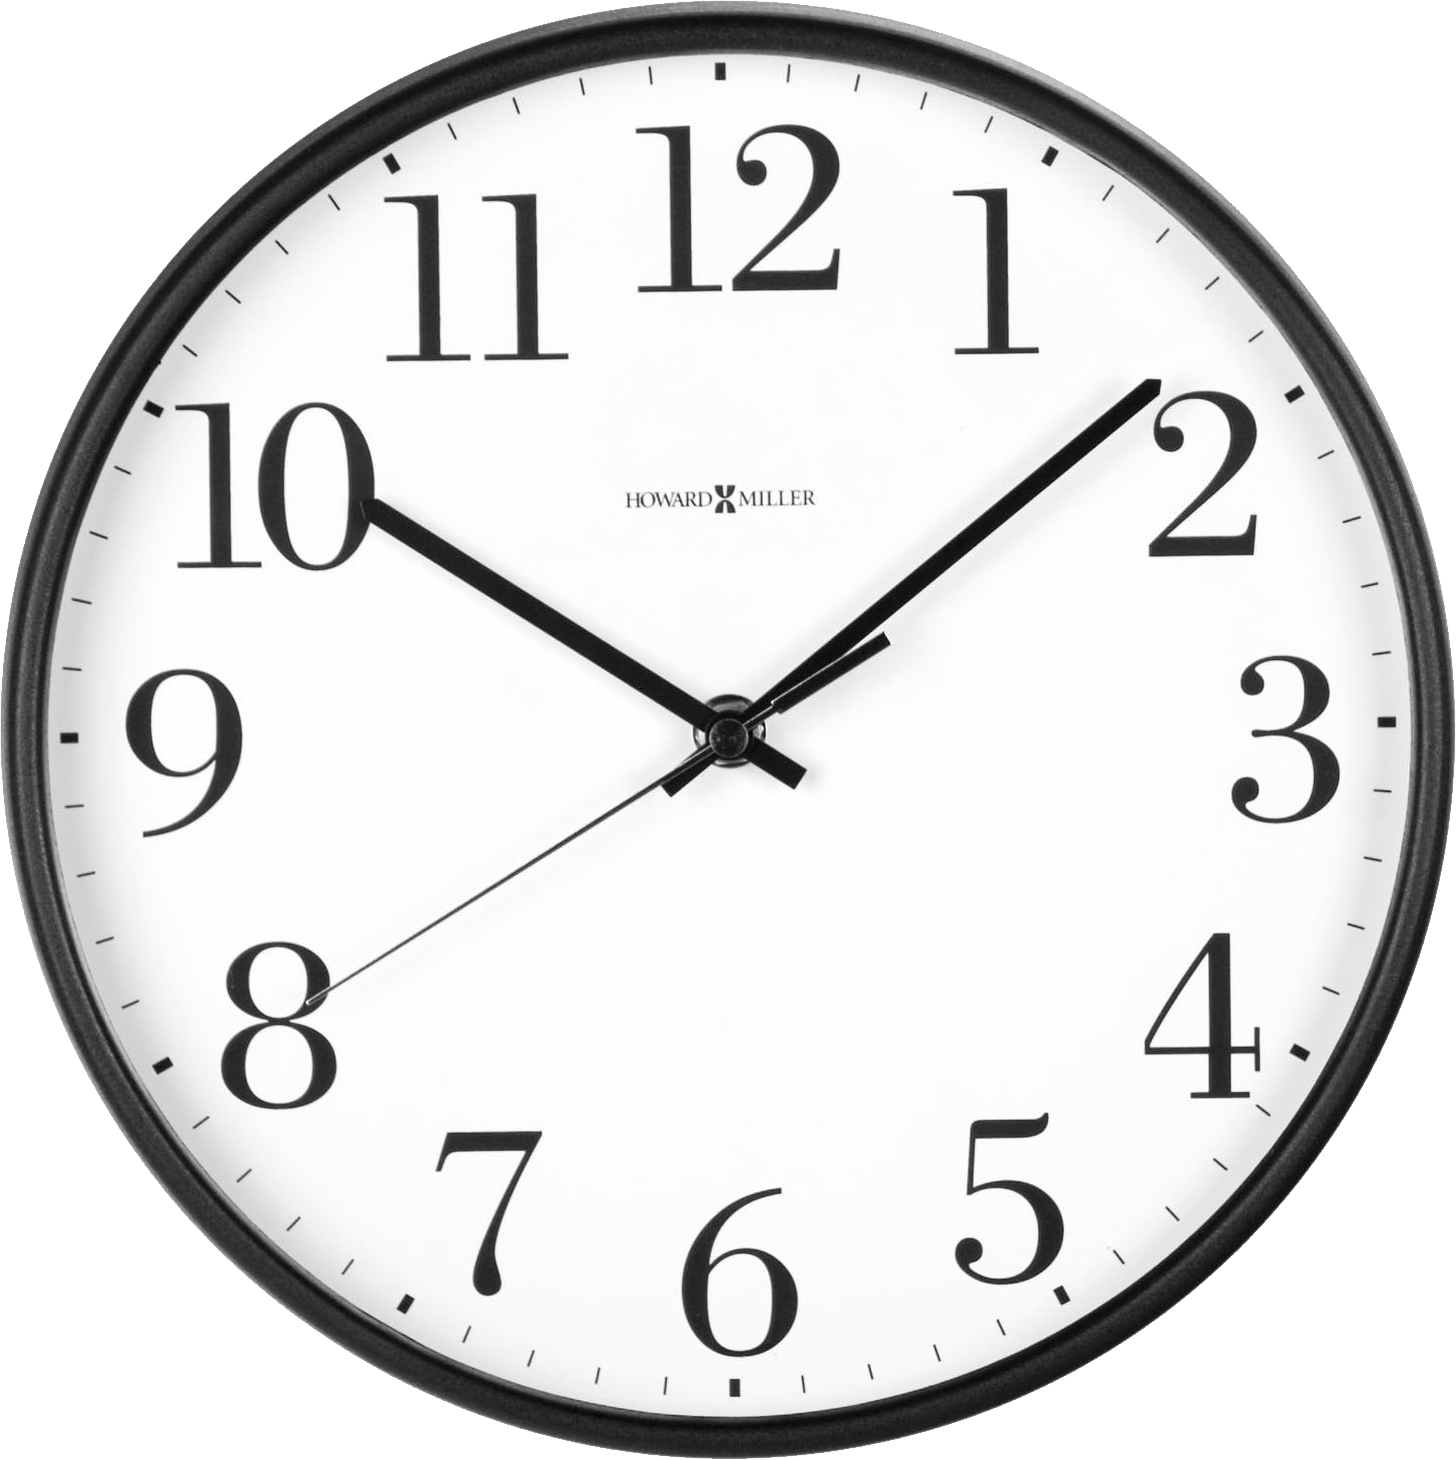 Get Clock Png Pictures image #25776